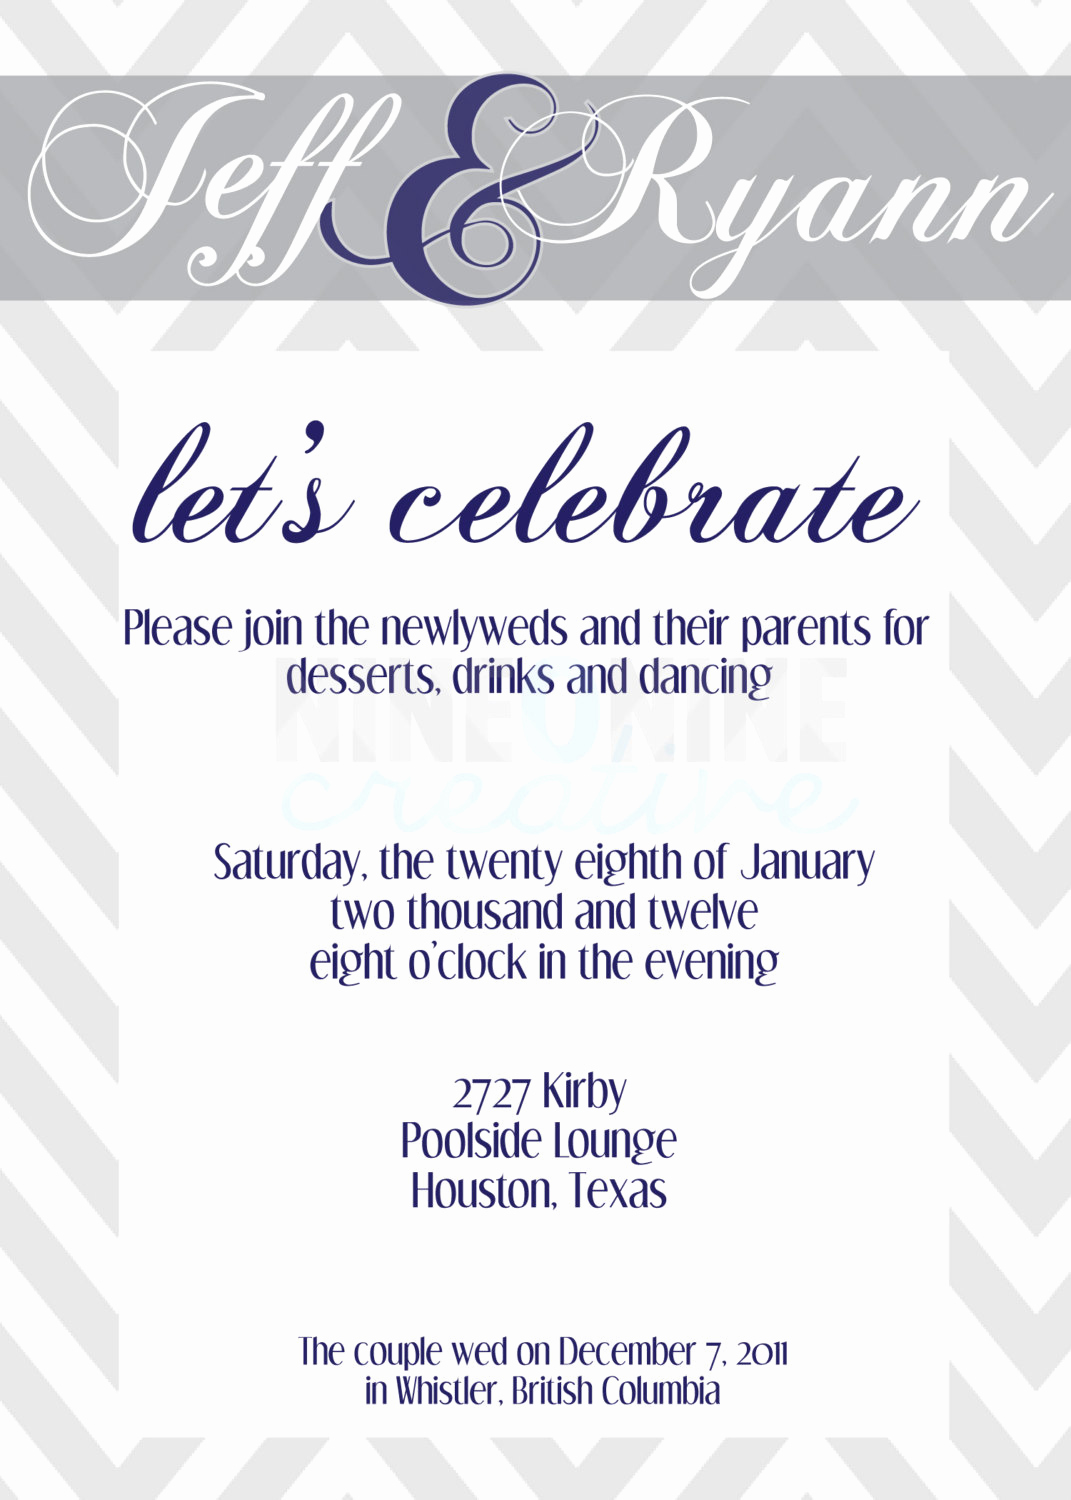 Post Wedding Reception Invitation Wording Unique Post Wedding Reception Invitations Templates